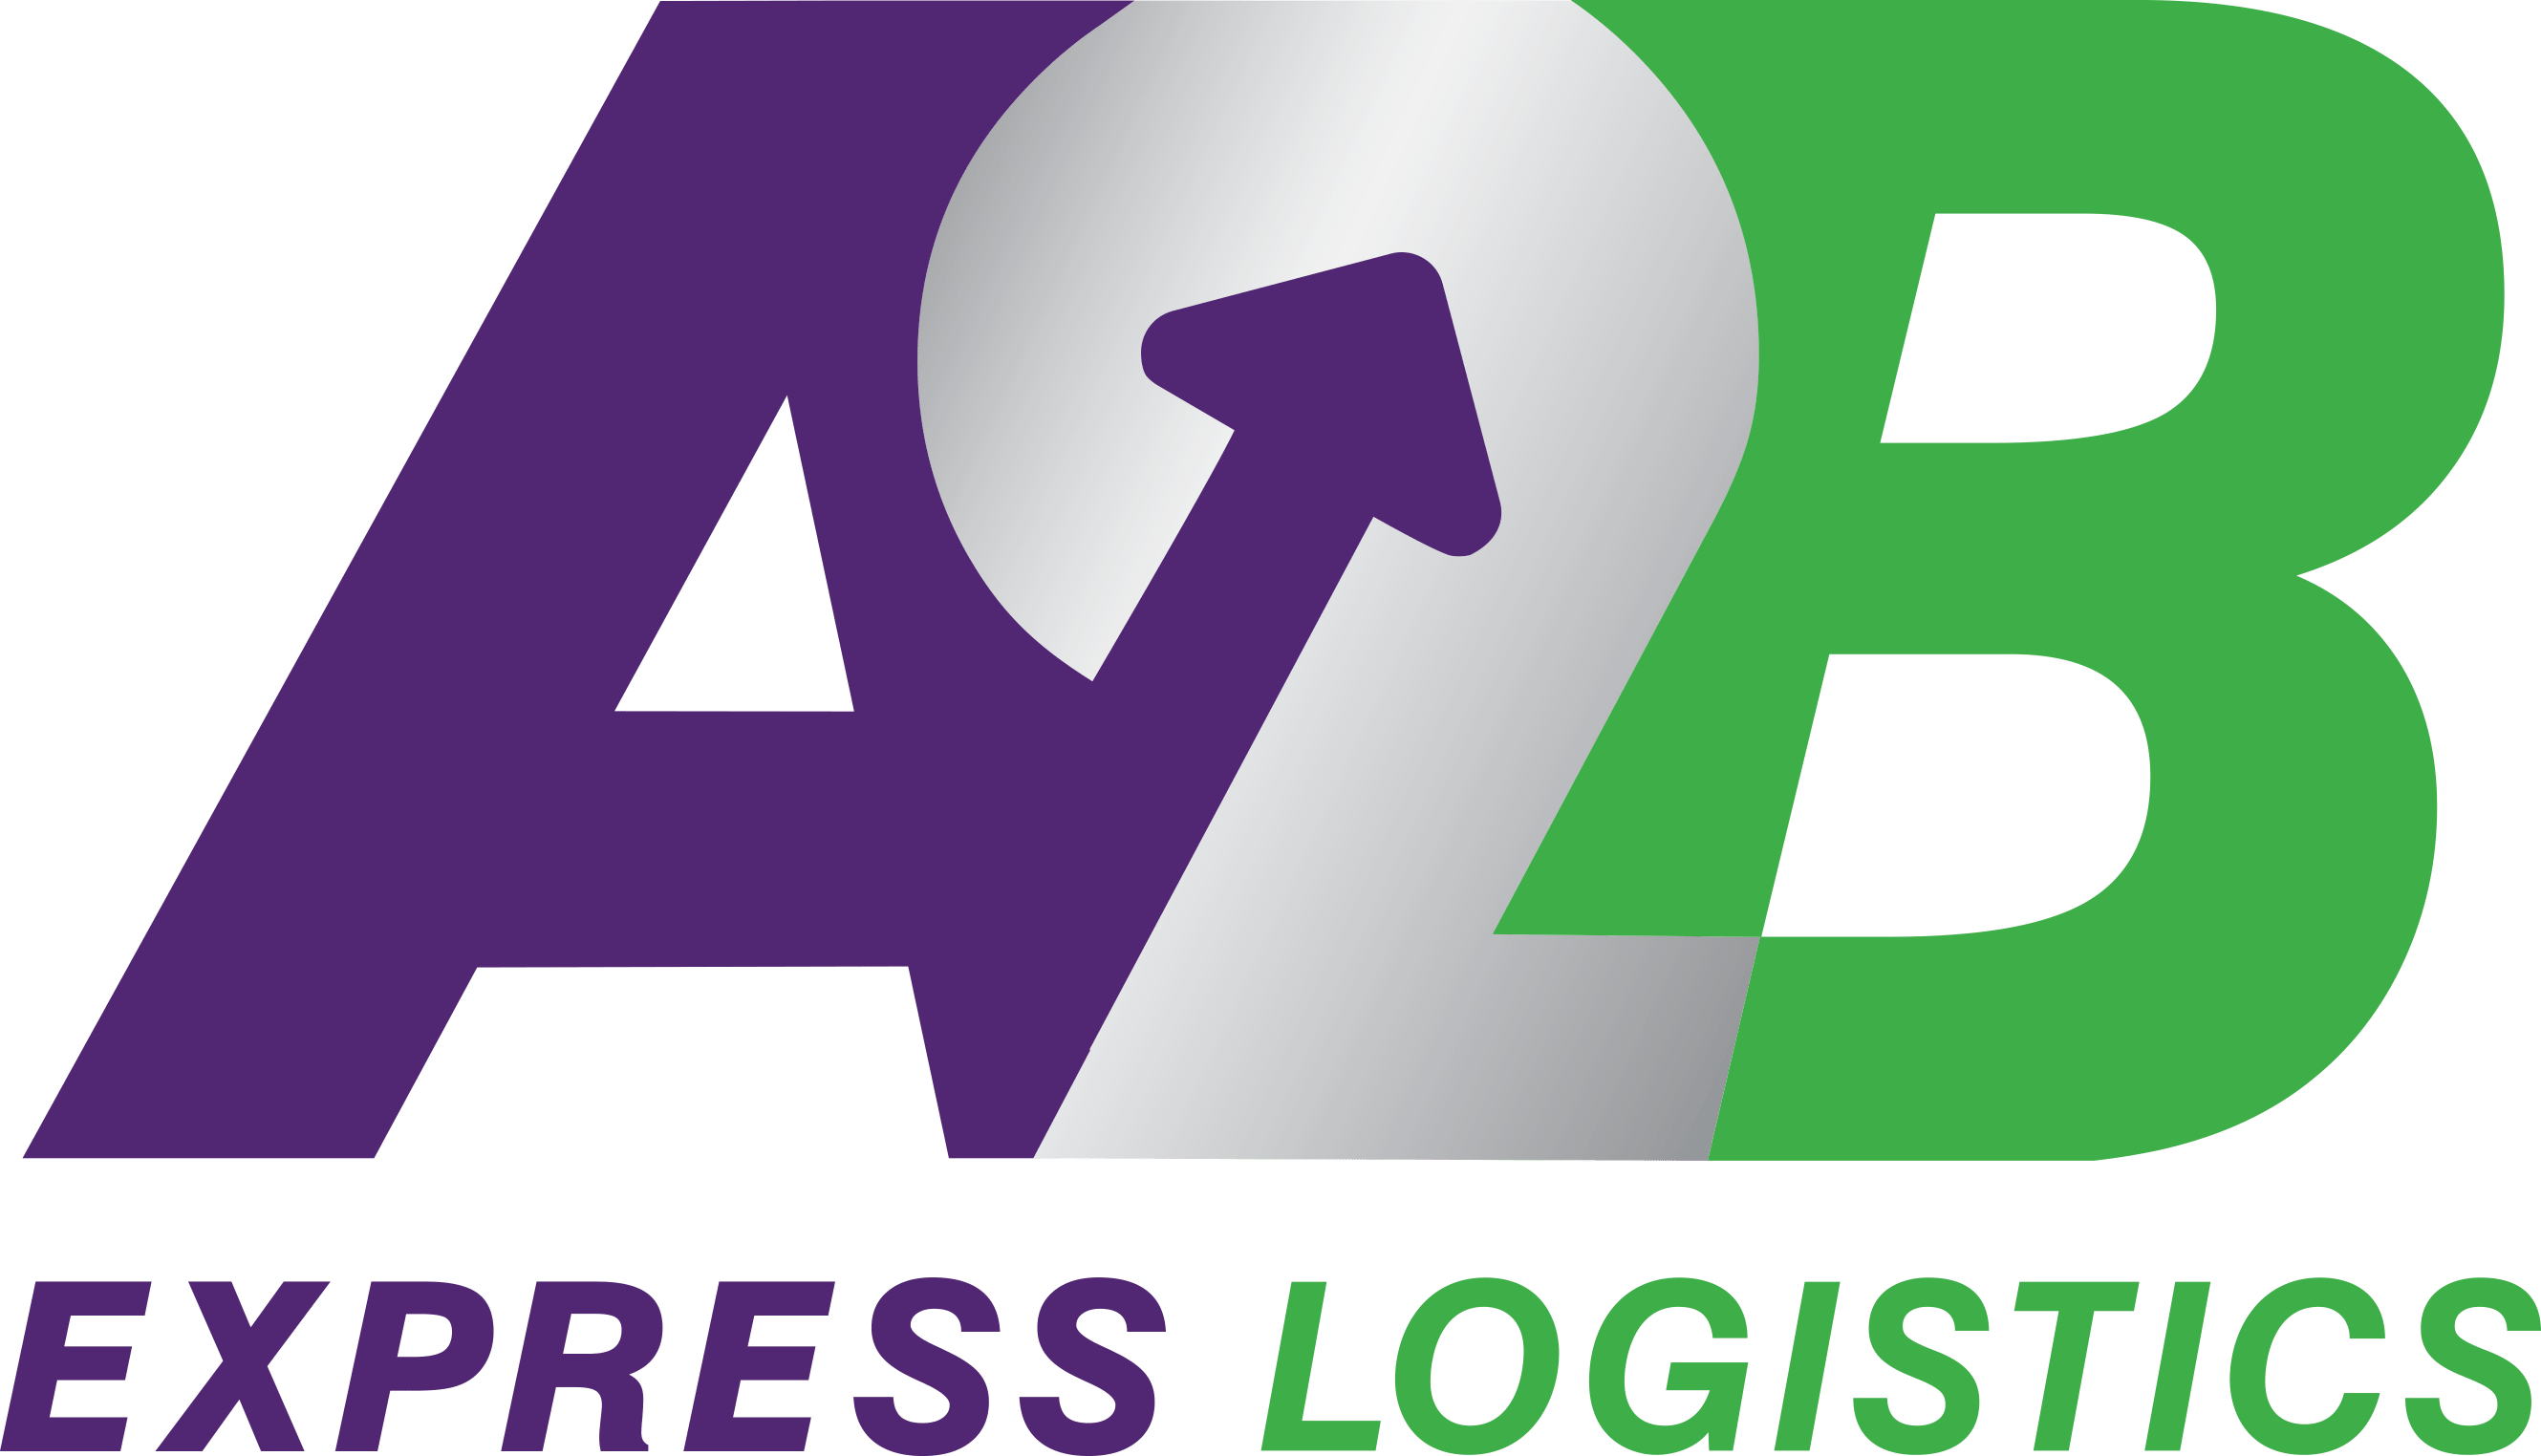 A2B Express Logistika